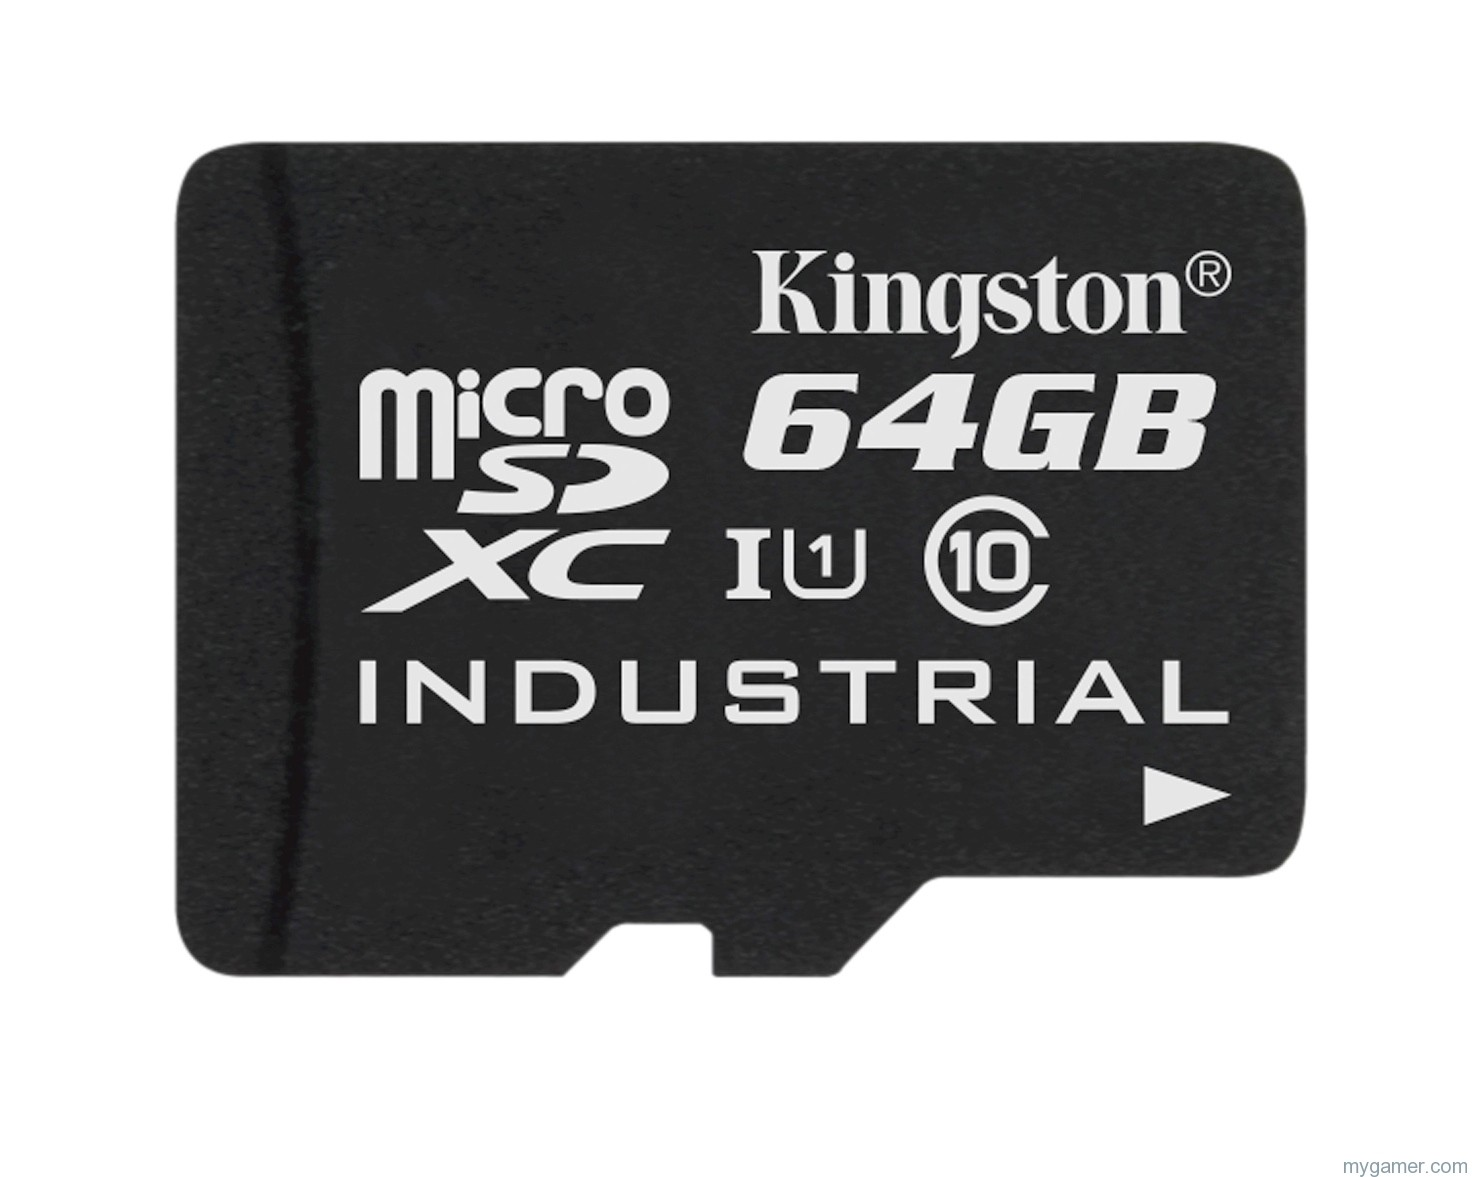 microSD Industrial Temp Card UHS-I 64GB Kingston Has Just Released Weatherproof microSD Cards Kingston Has Just Released Weatherproof microSD Cards microSD Industrial Temp Card UHS I 64GB